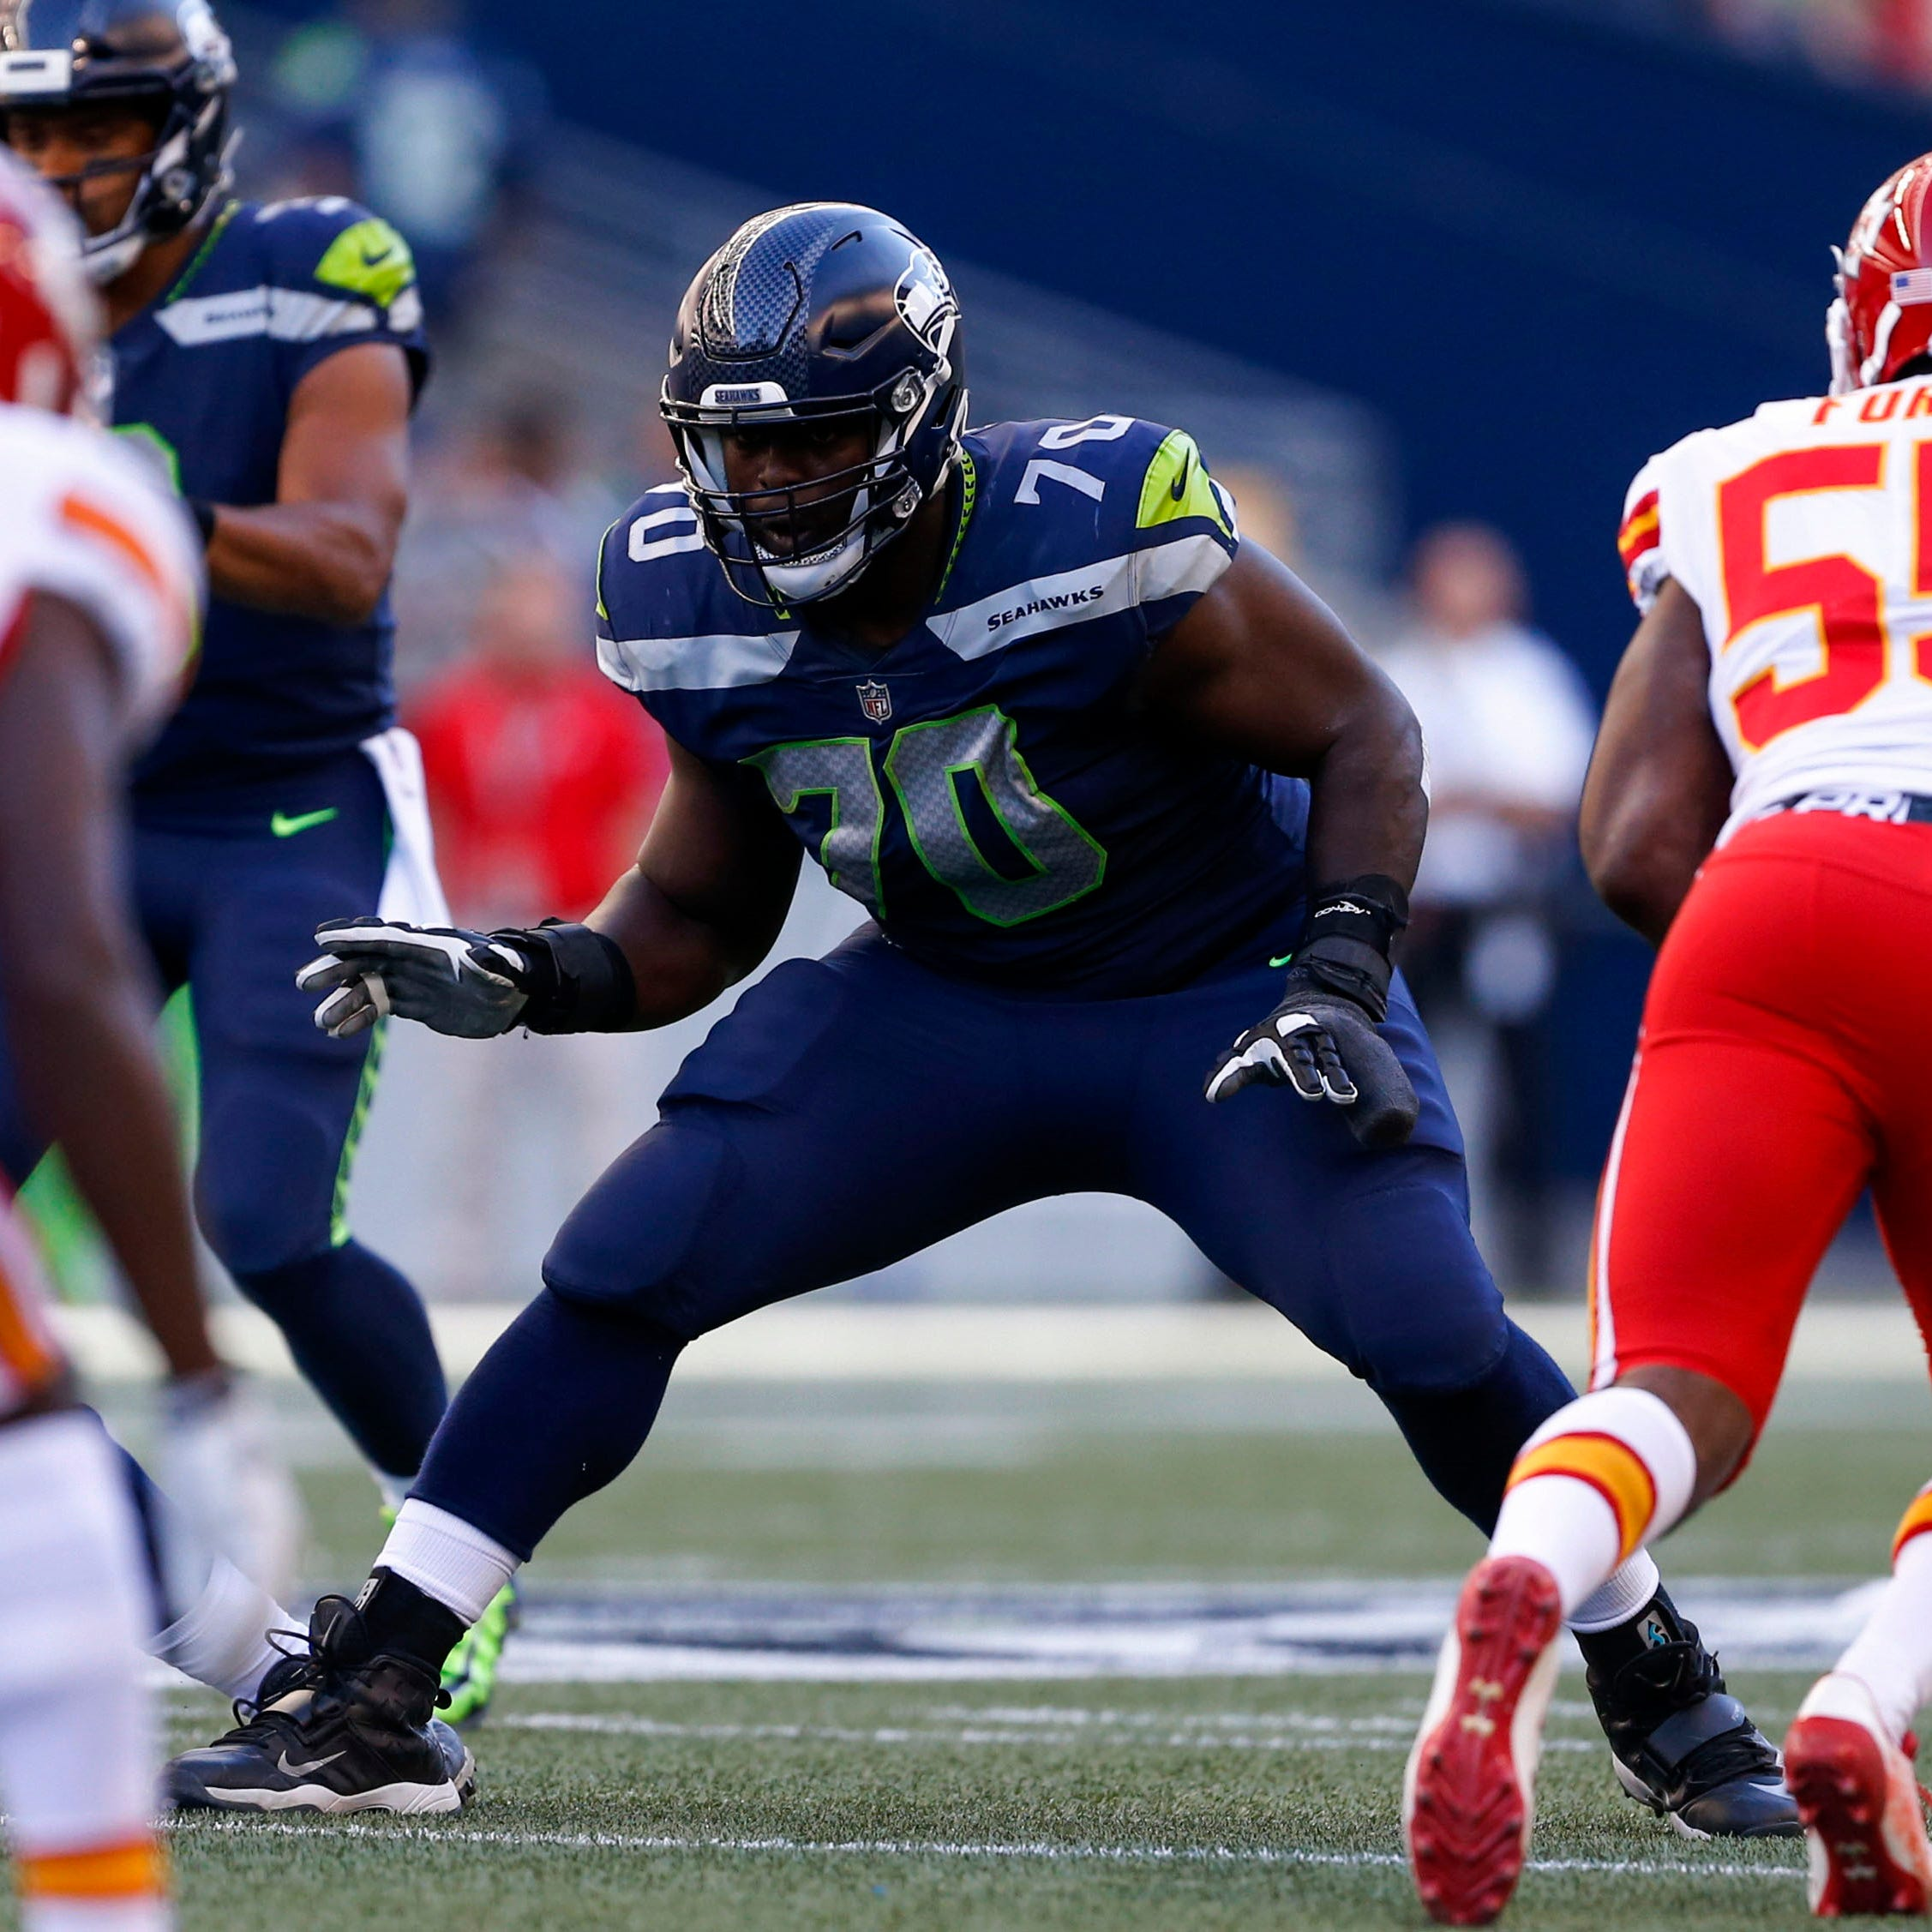 Colts sign tackle Rees Odhiambo, who suffered scary injury vs. Indy last season